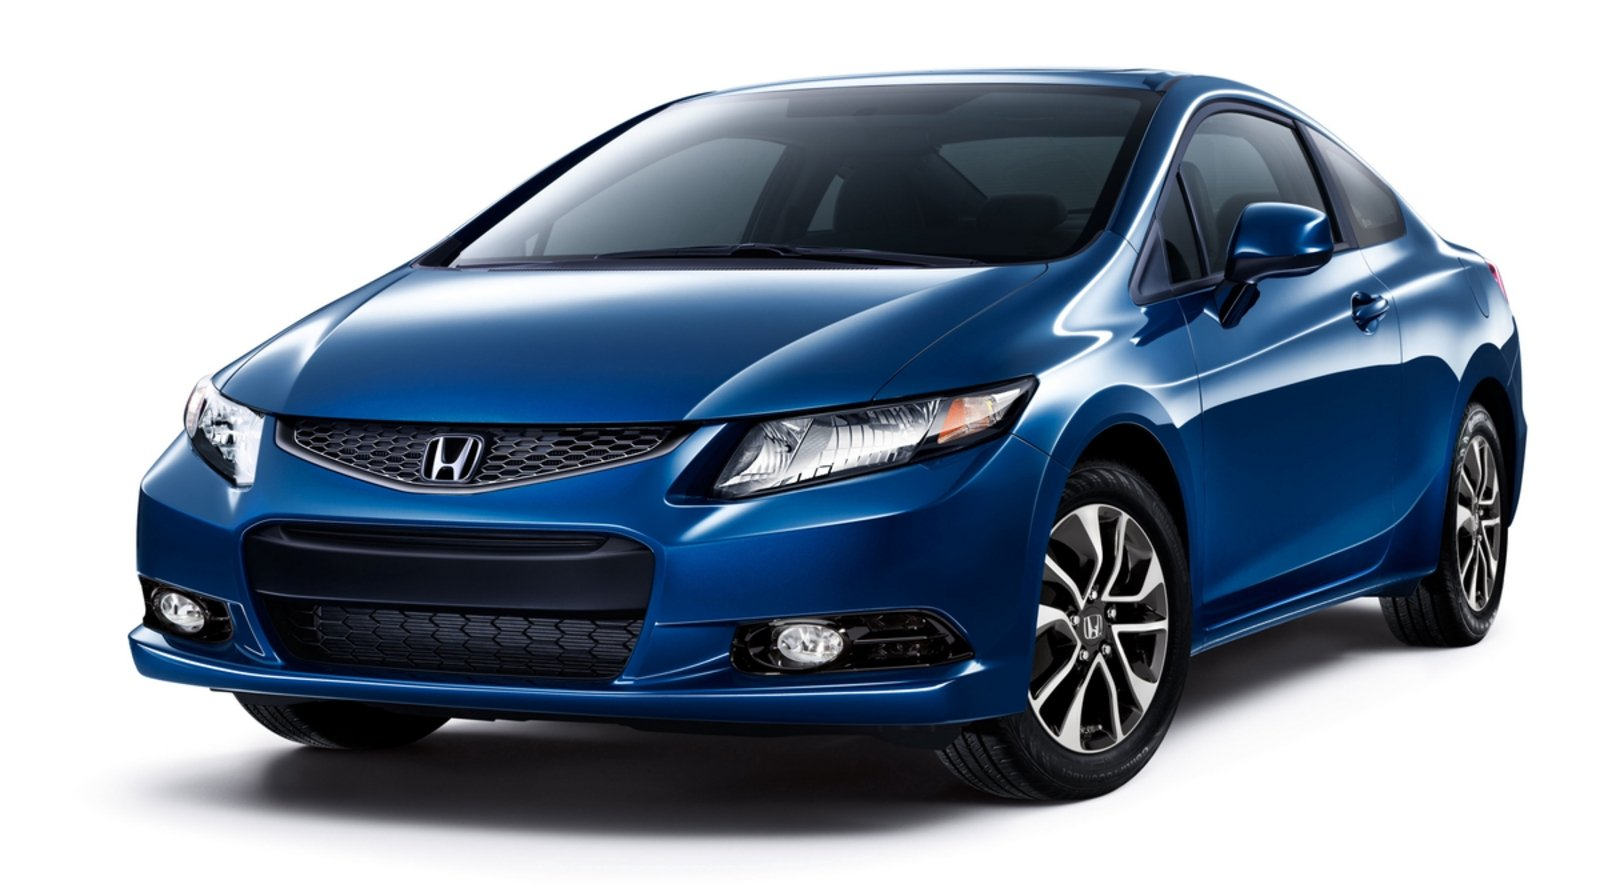 2013 Honda Civic Coupe Review